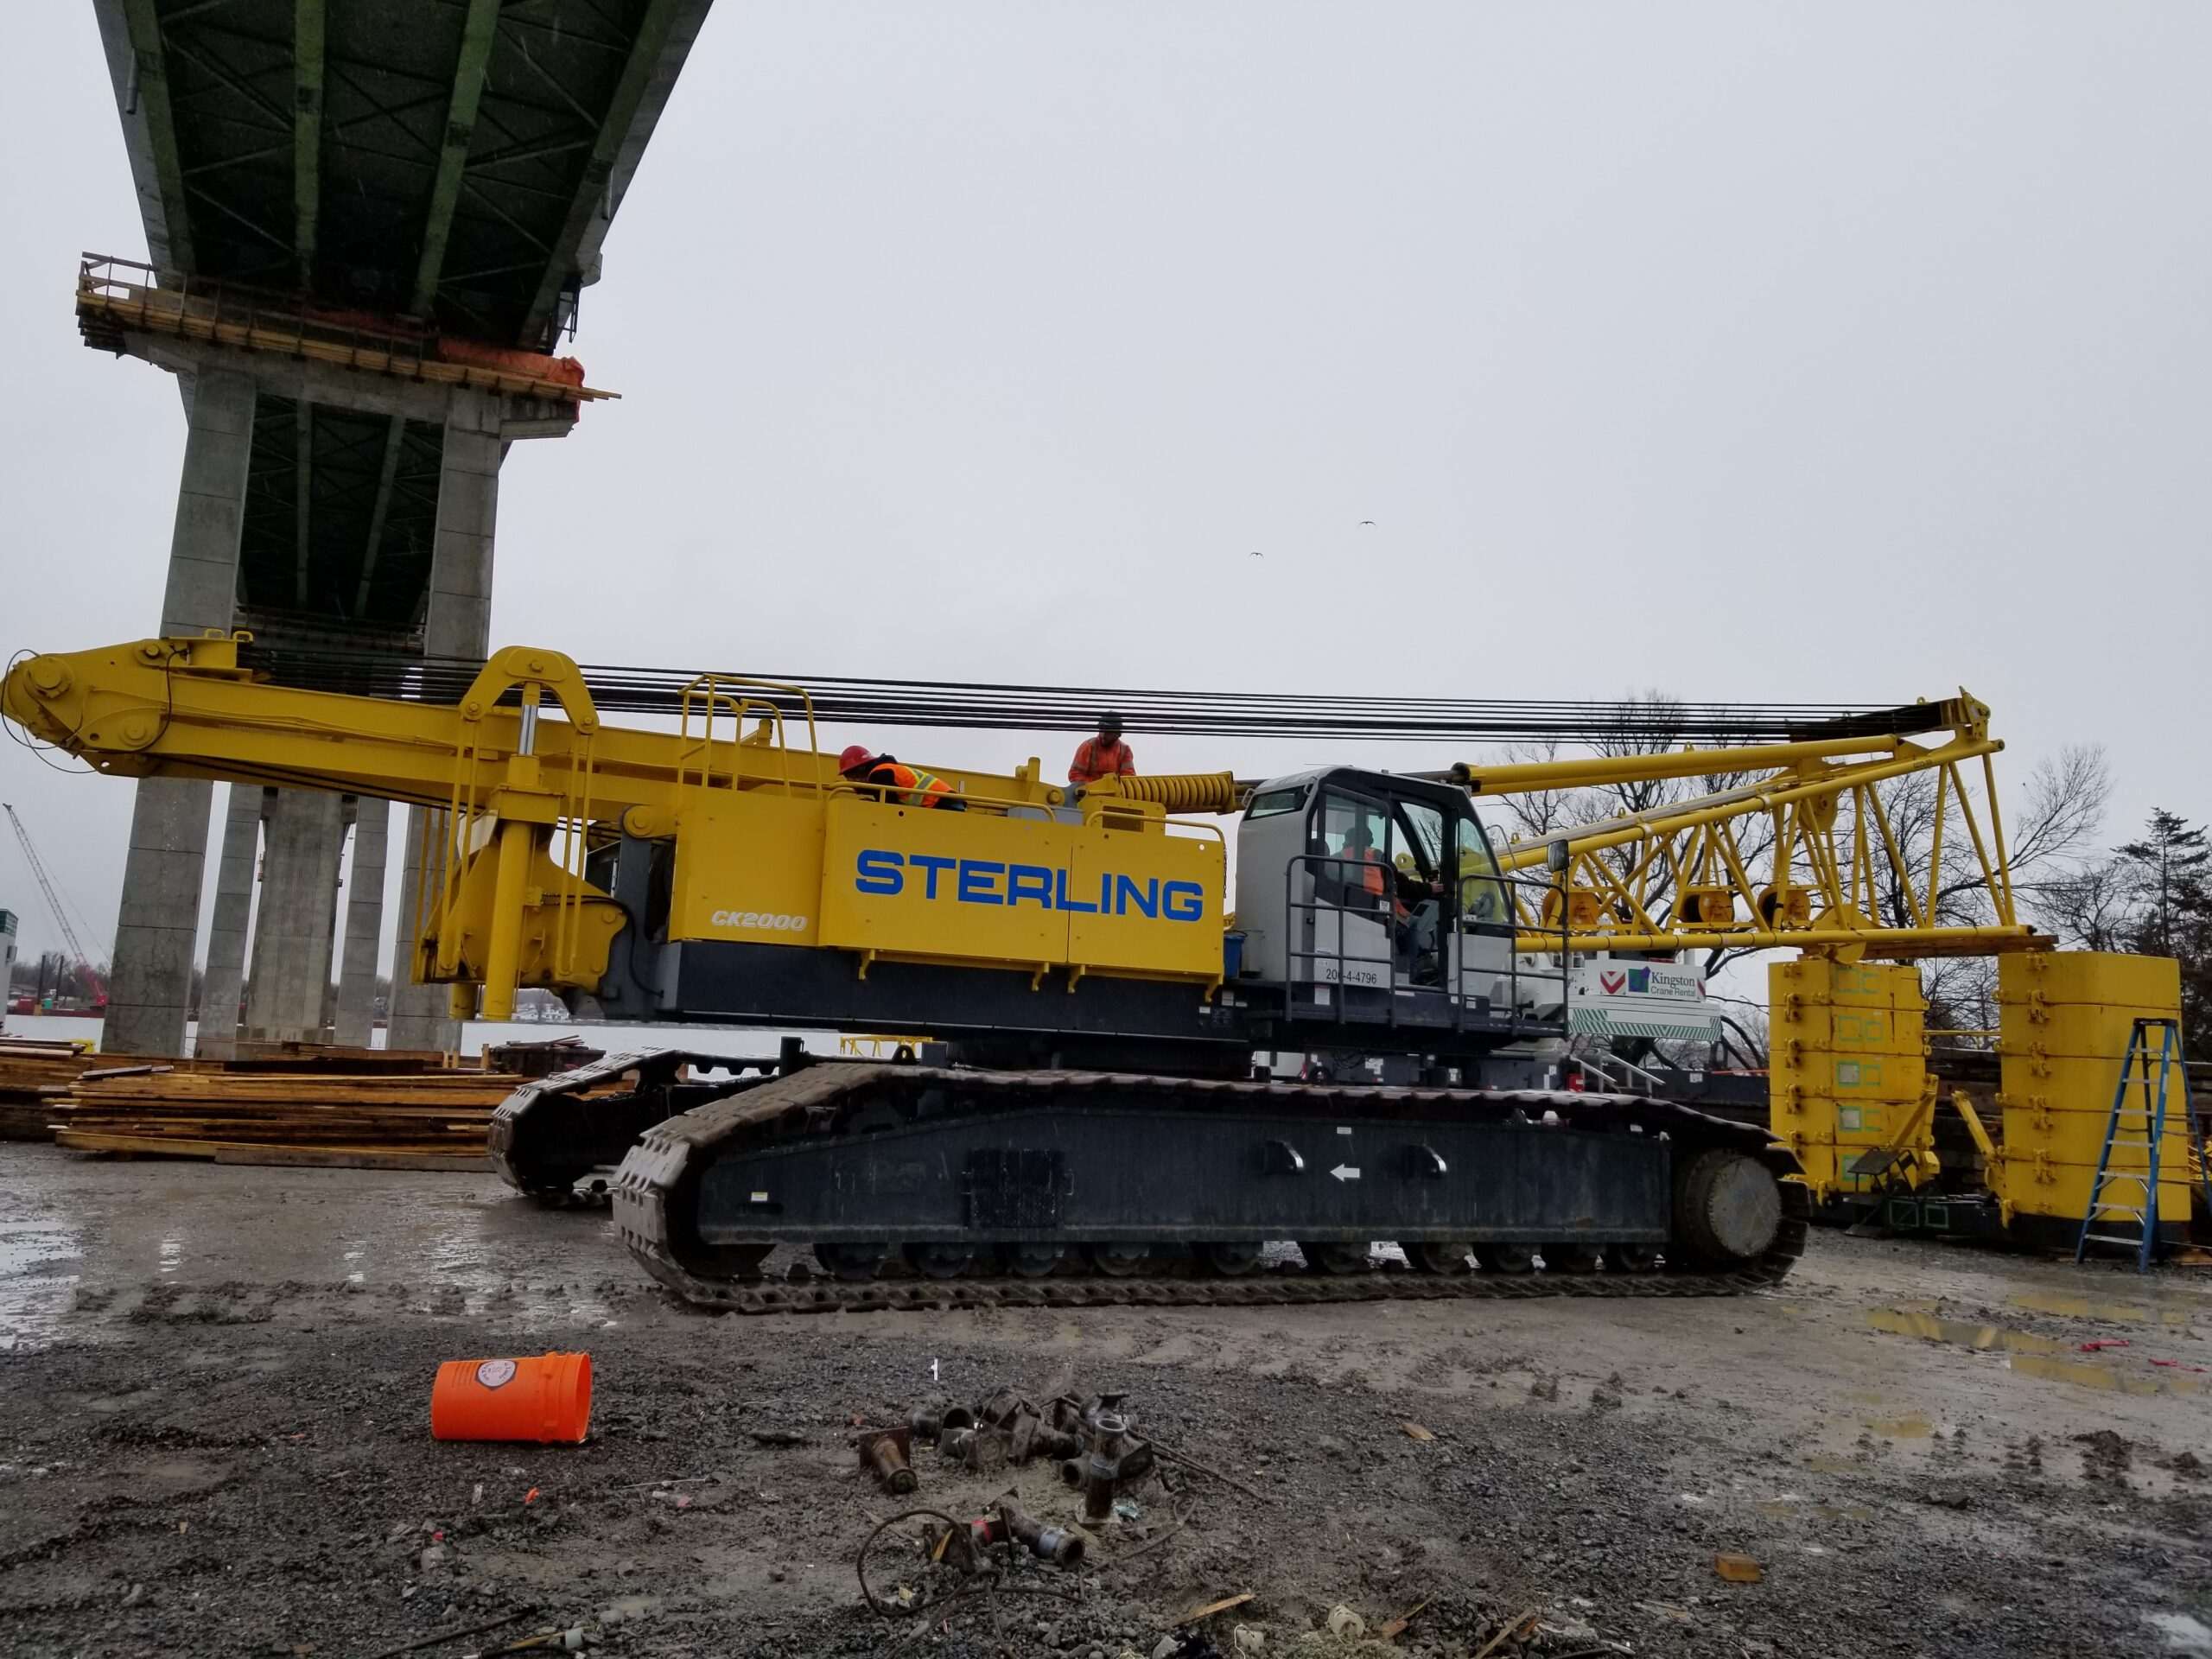 Preparing the body of the crane to be removed from site